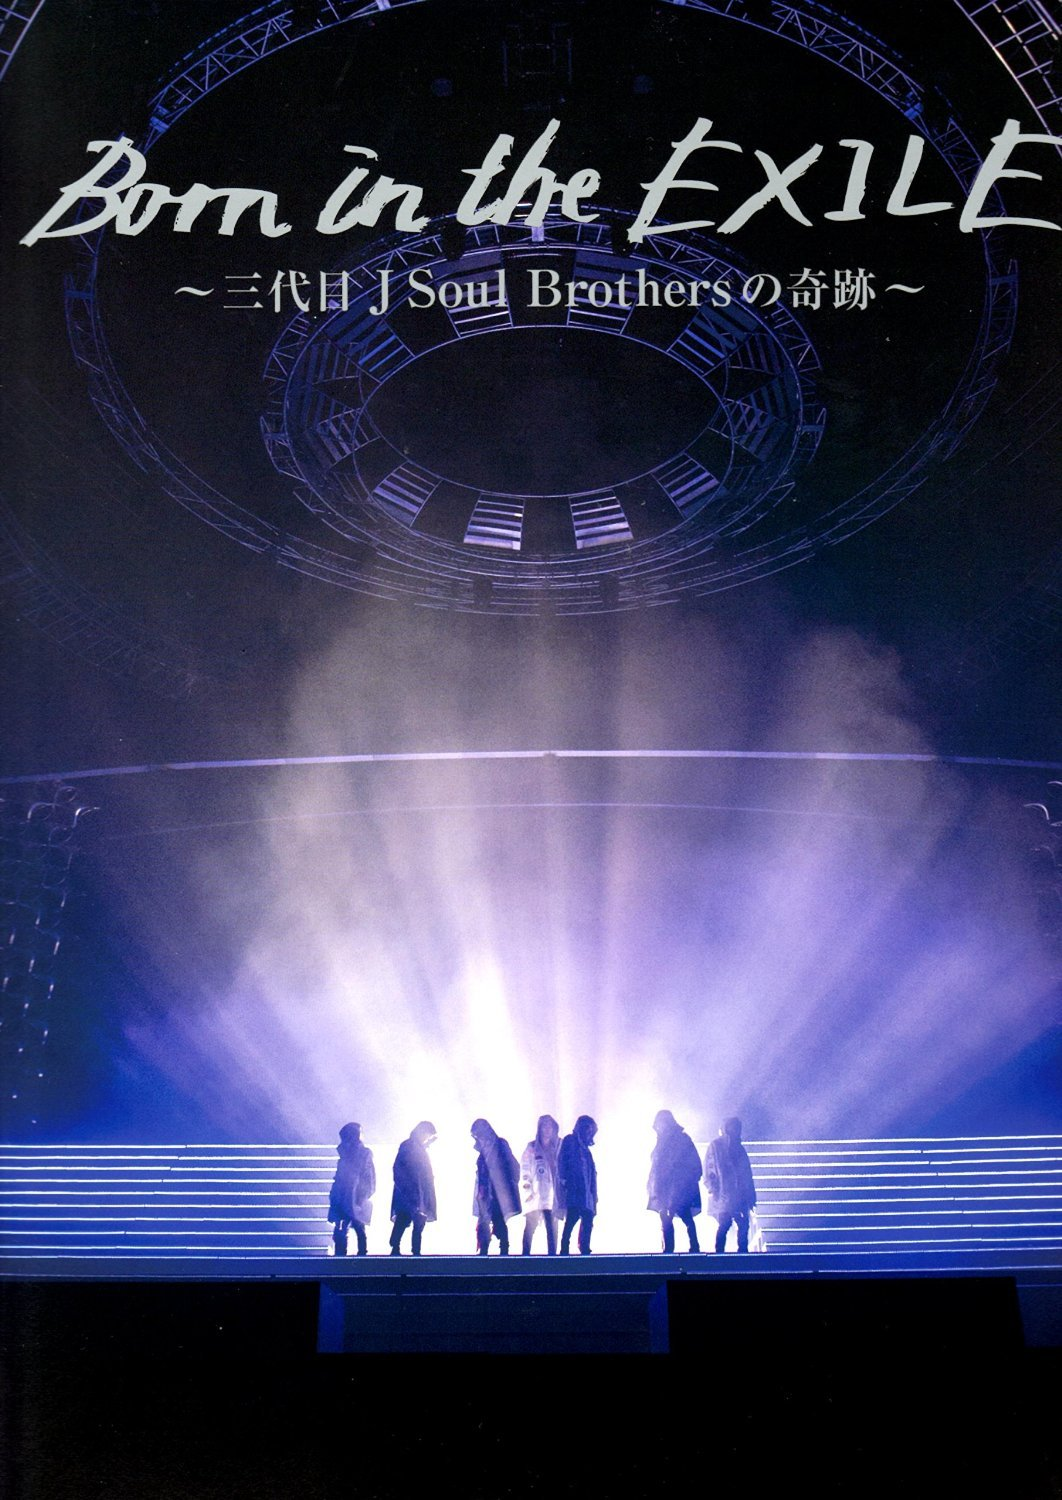 Amazon Co Jp チラシ付映画パンフレット Born In The Exile